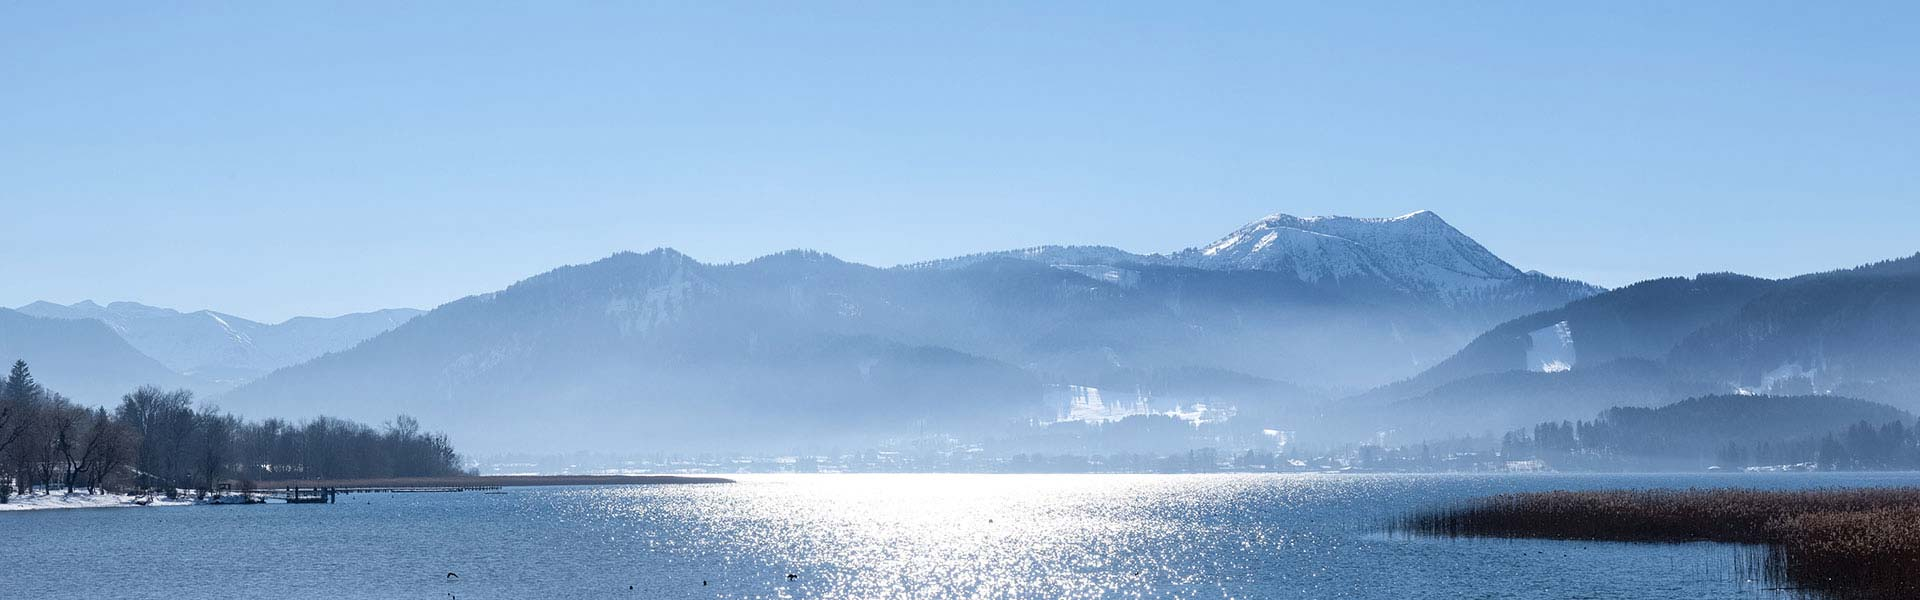 tegernsee_winter.jpg